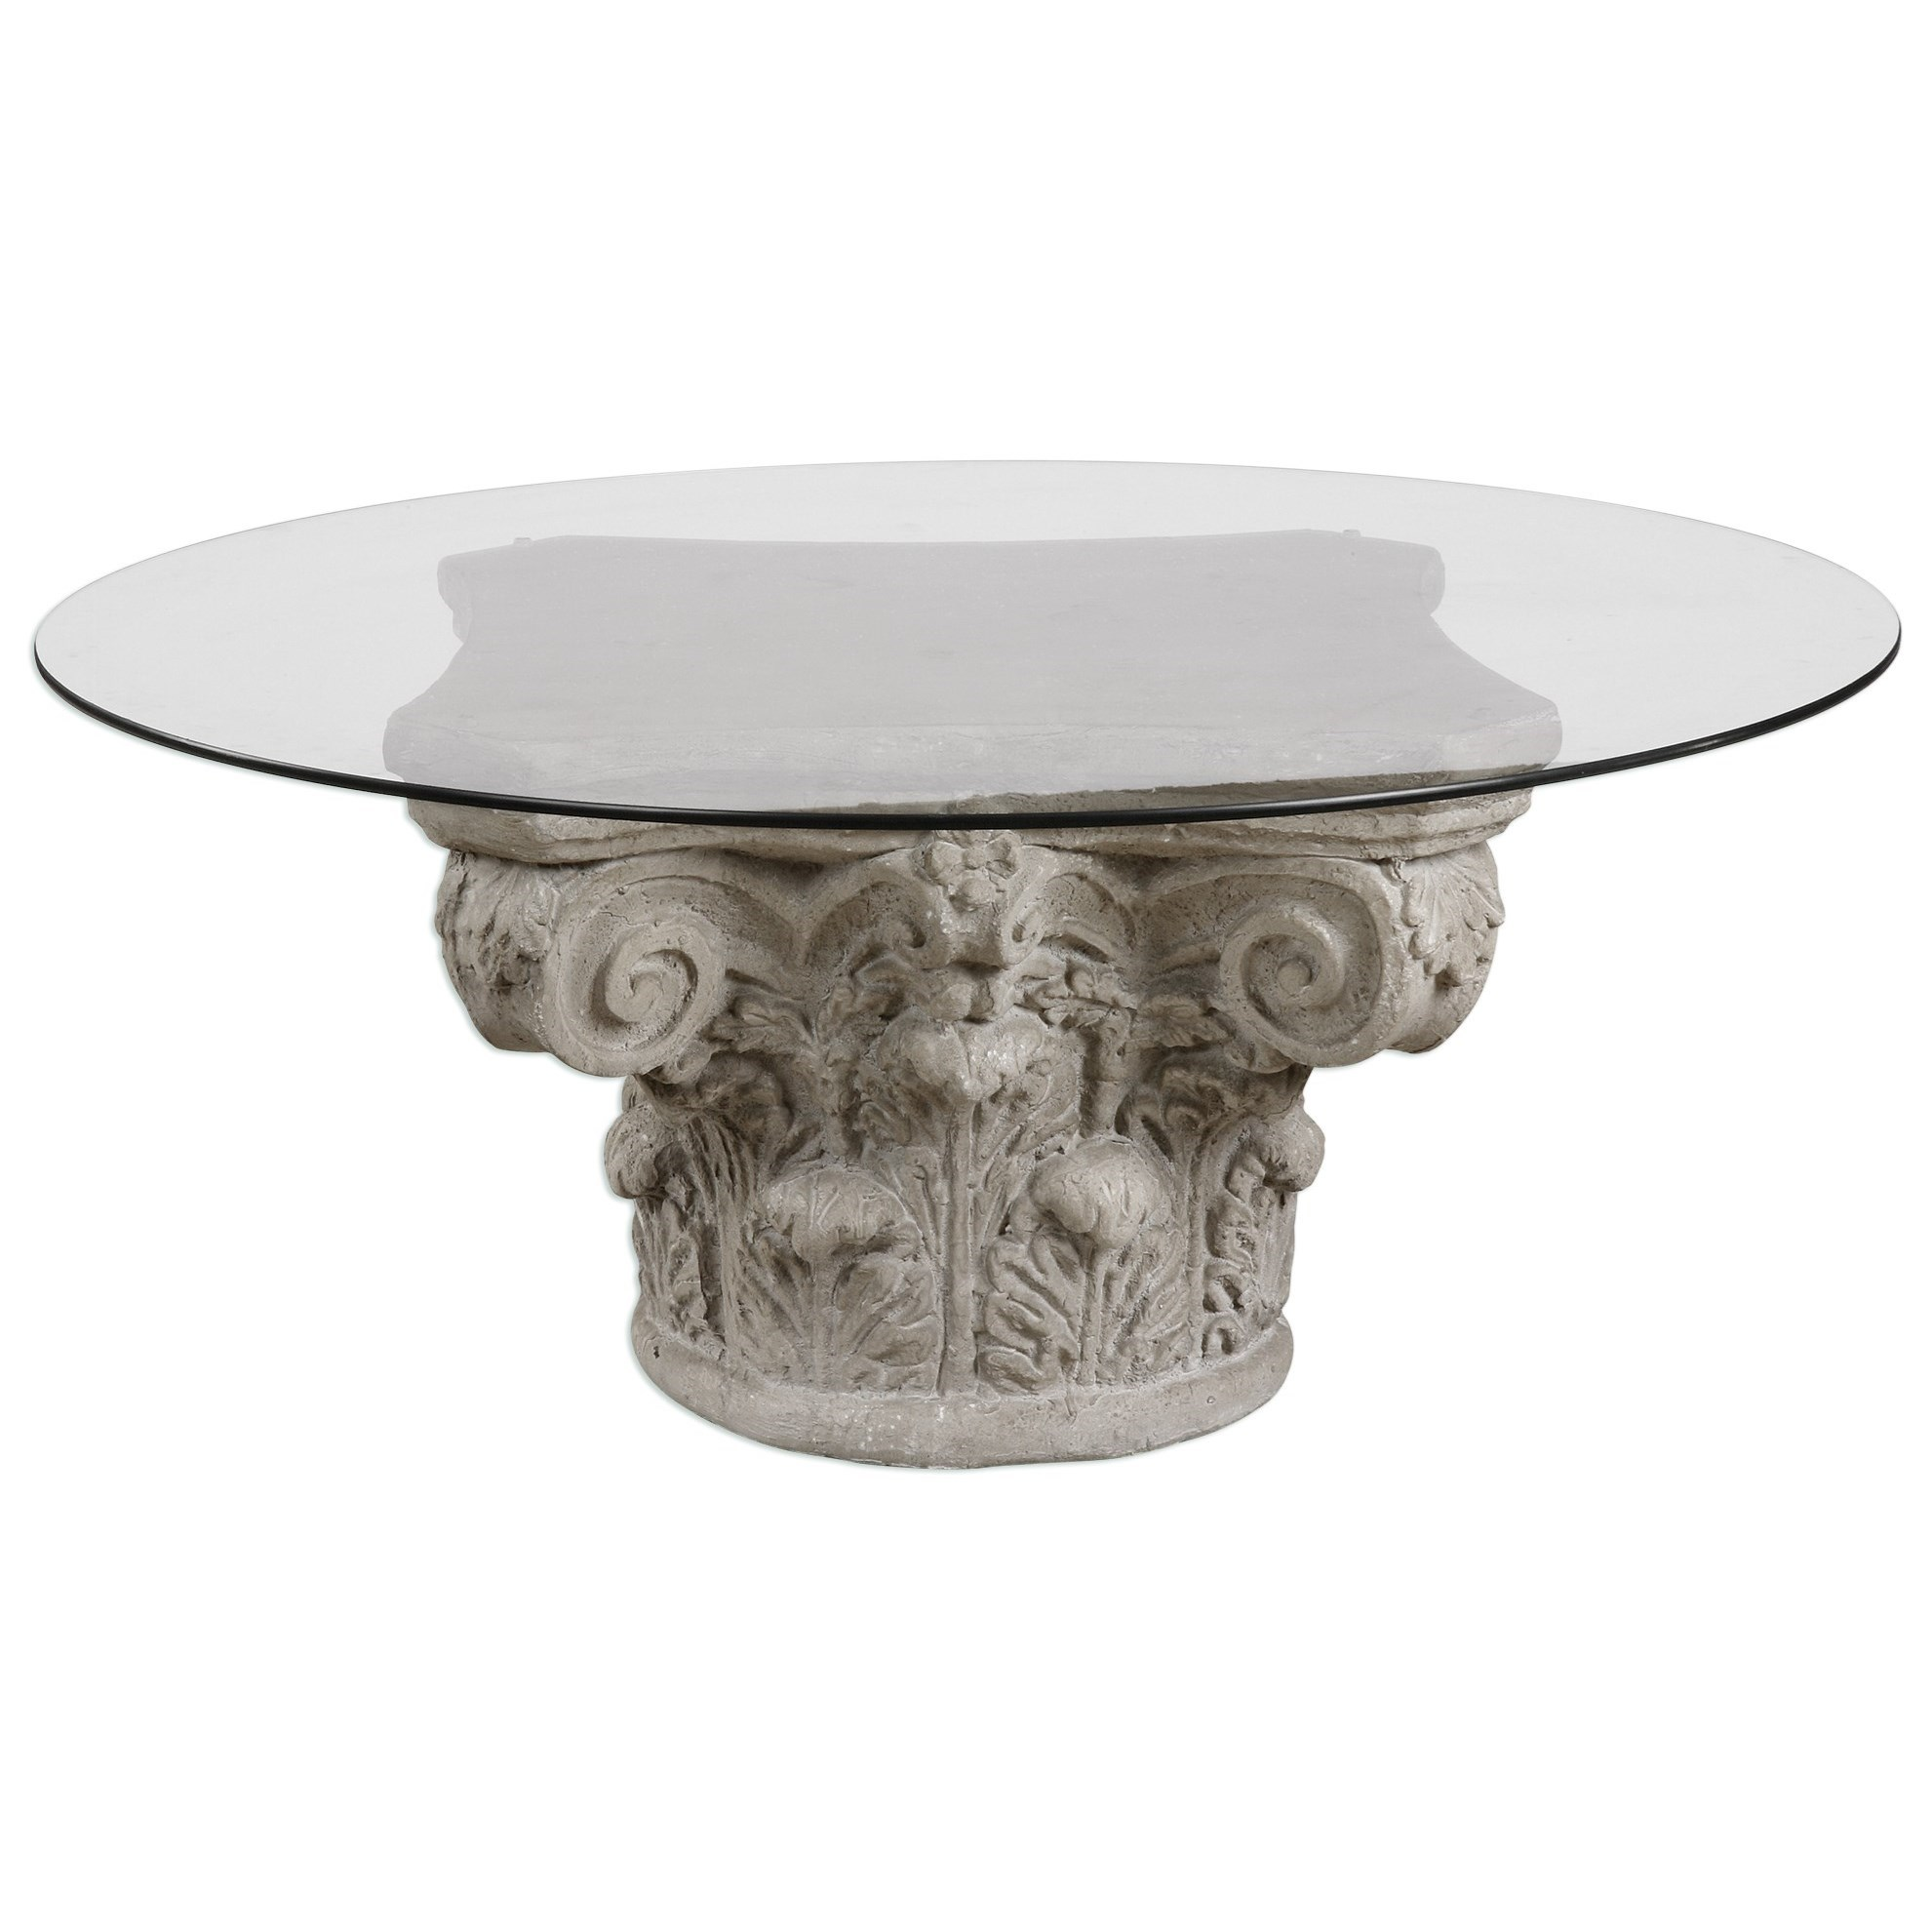 Uttermost Accent Furniture  Corinthian Aged Stone Accent Table - Item Number: 24699